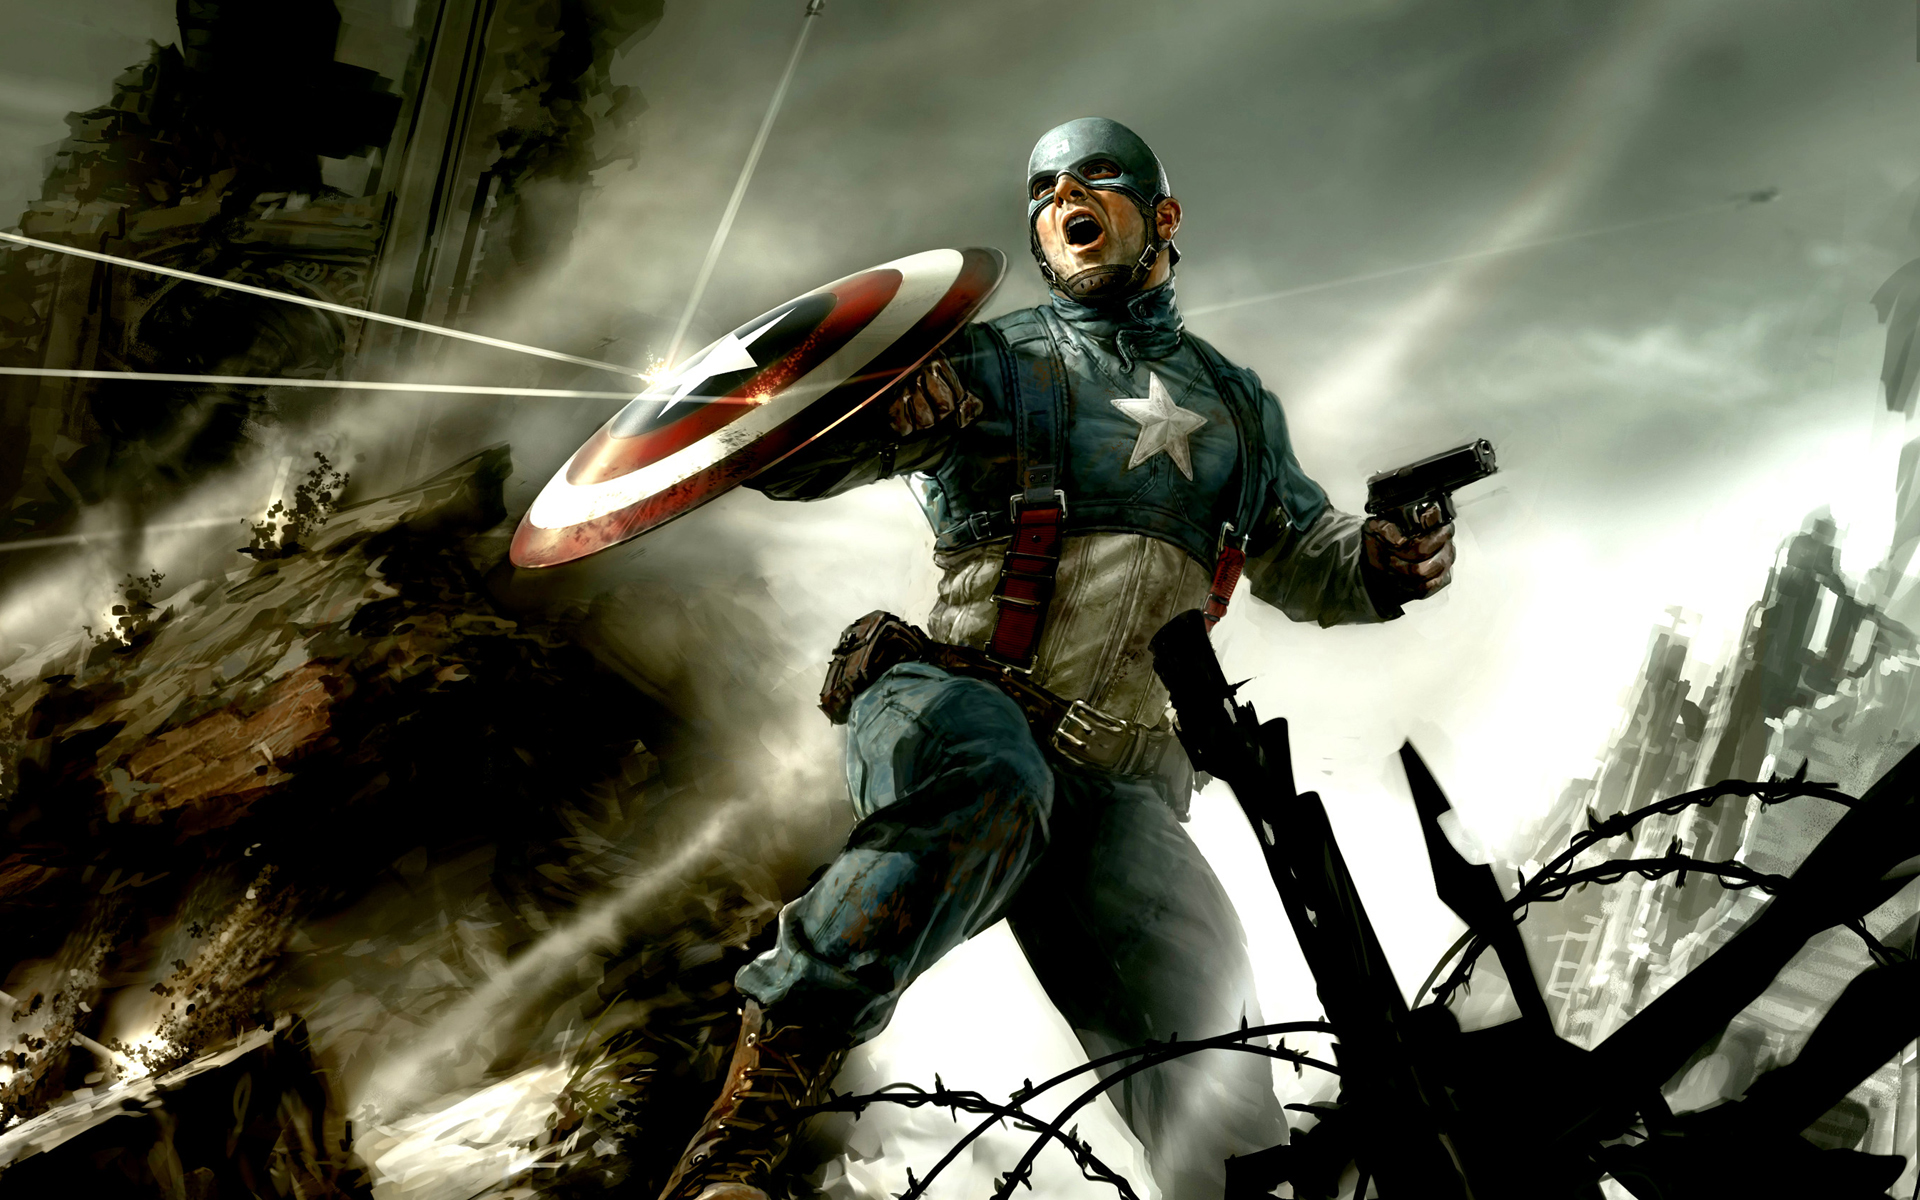 Captain America CG 108.57 Kb